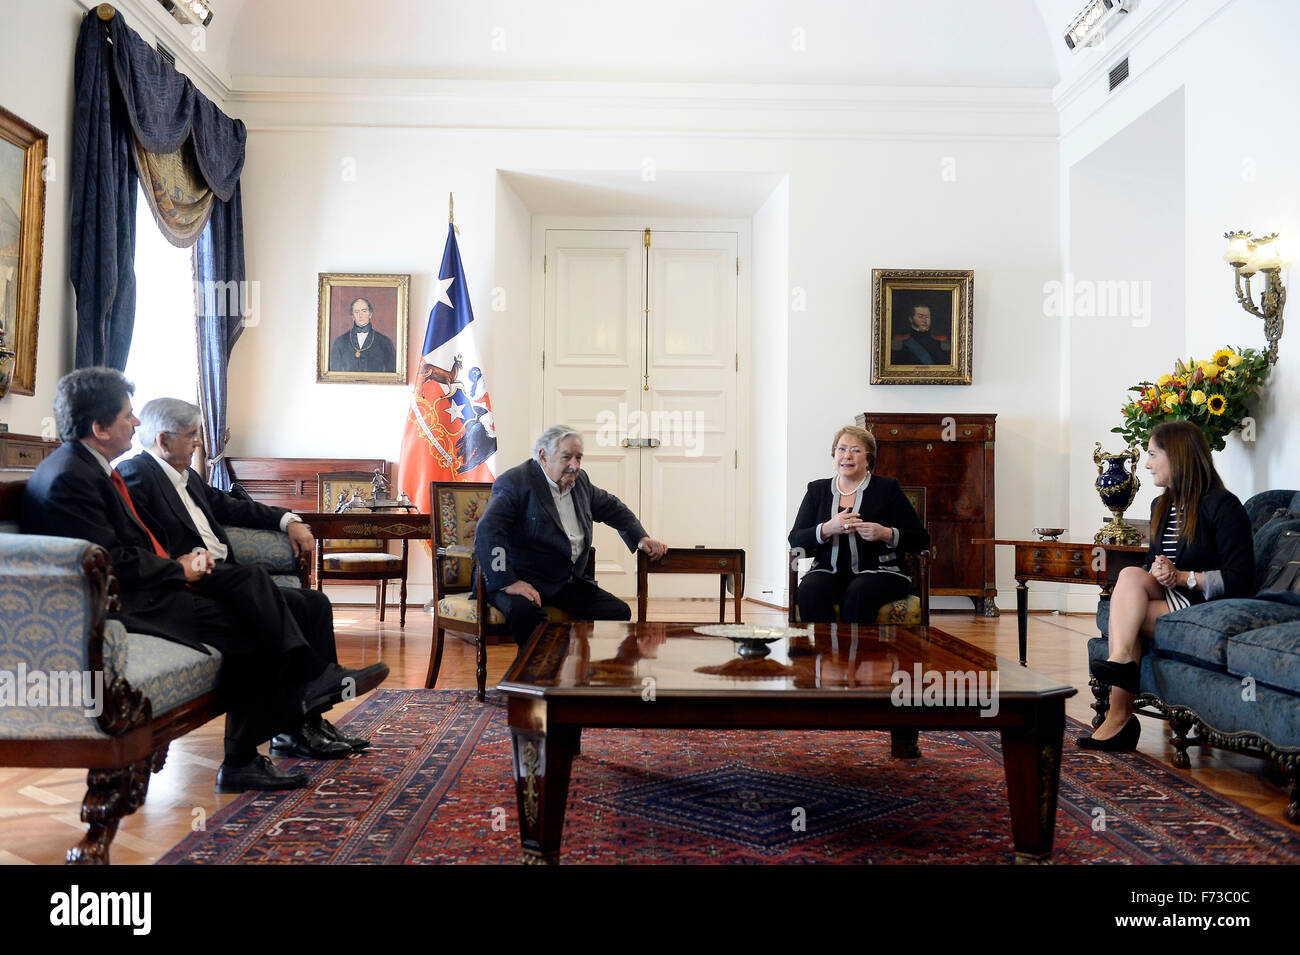 (151124) -- SANTIAGO, Nov. 24, 2015 (Xinhua) -- Image provided by Chile's Presidency shows Chilean President - Stock Image